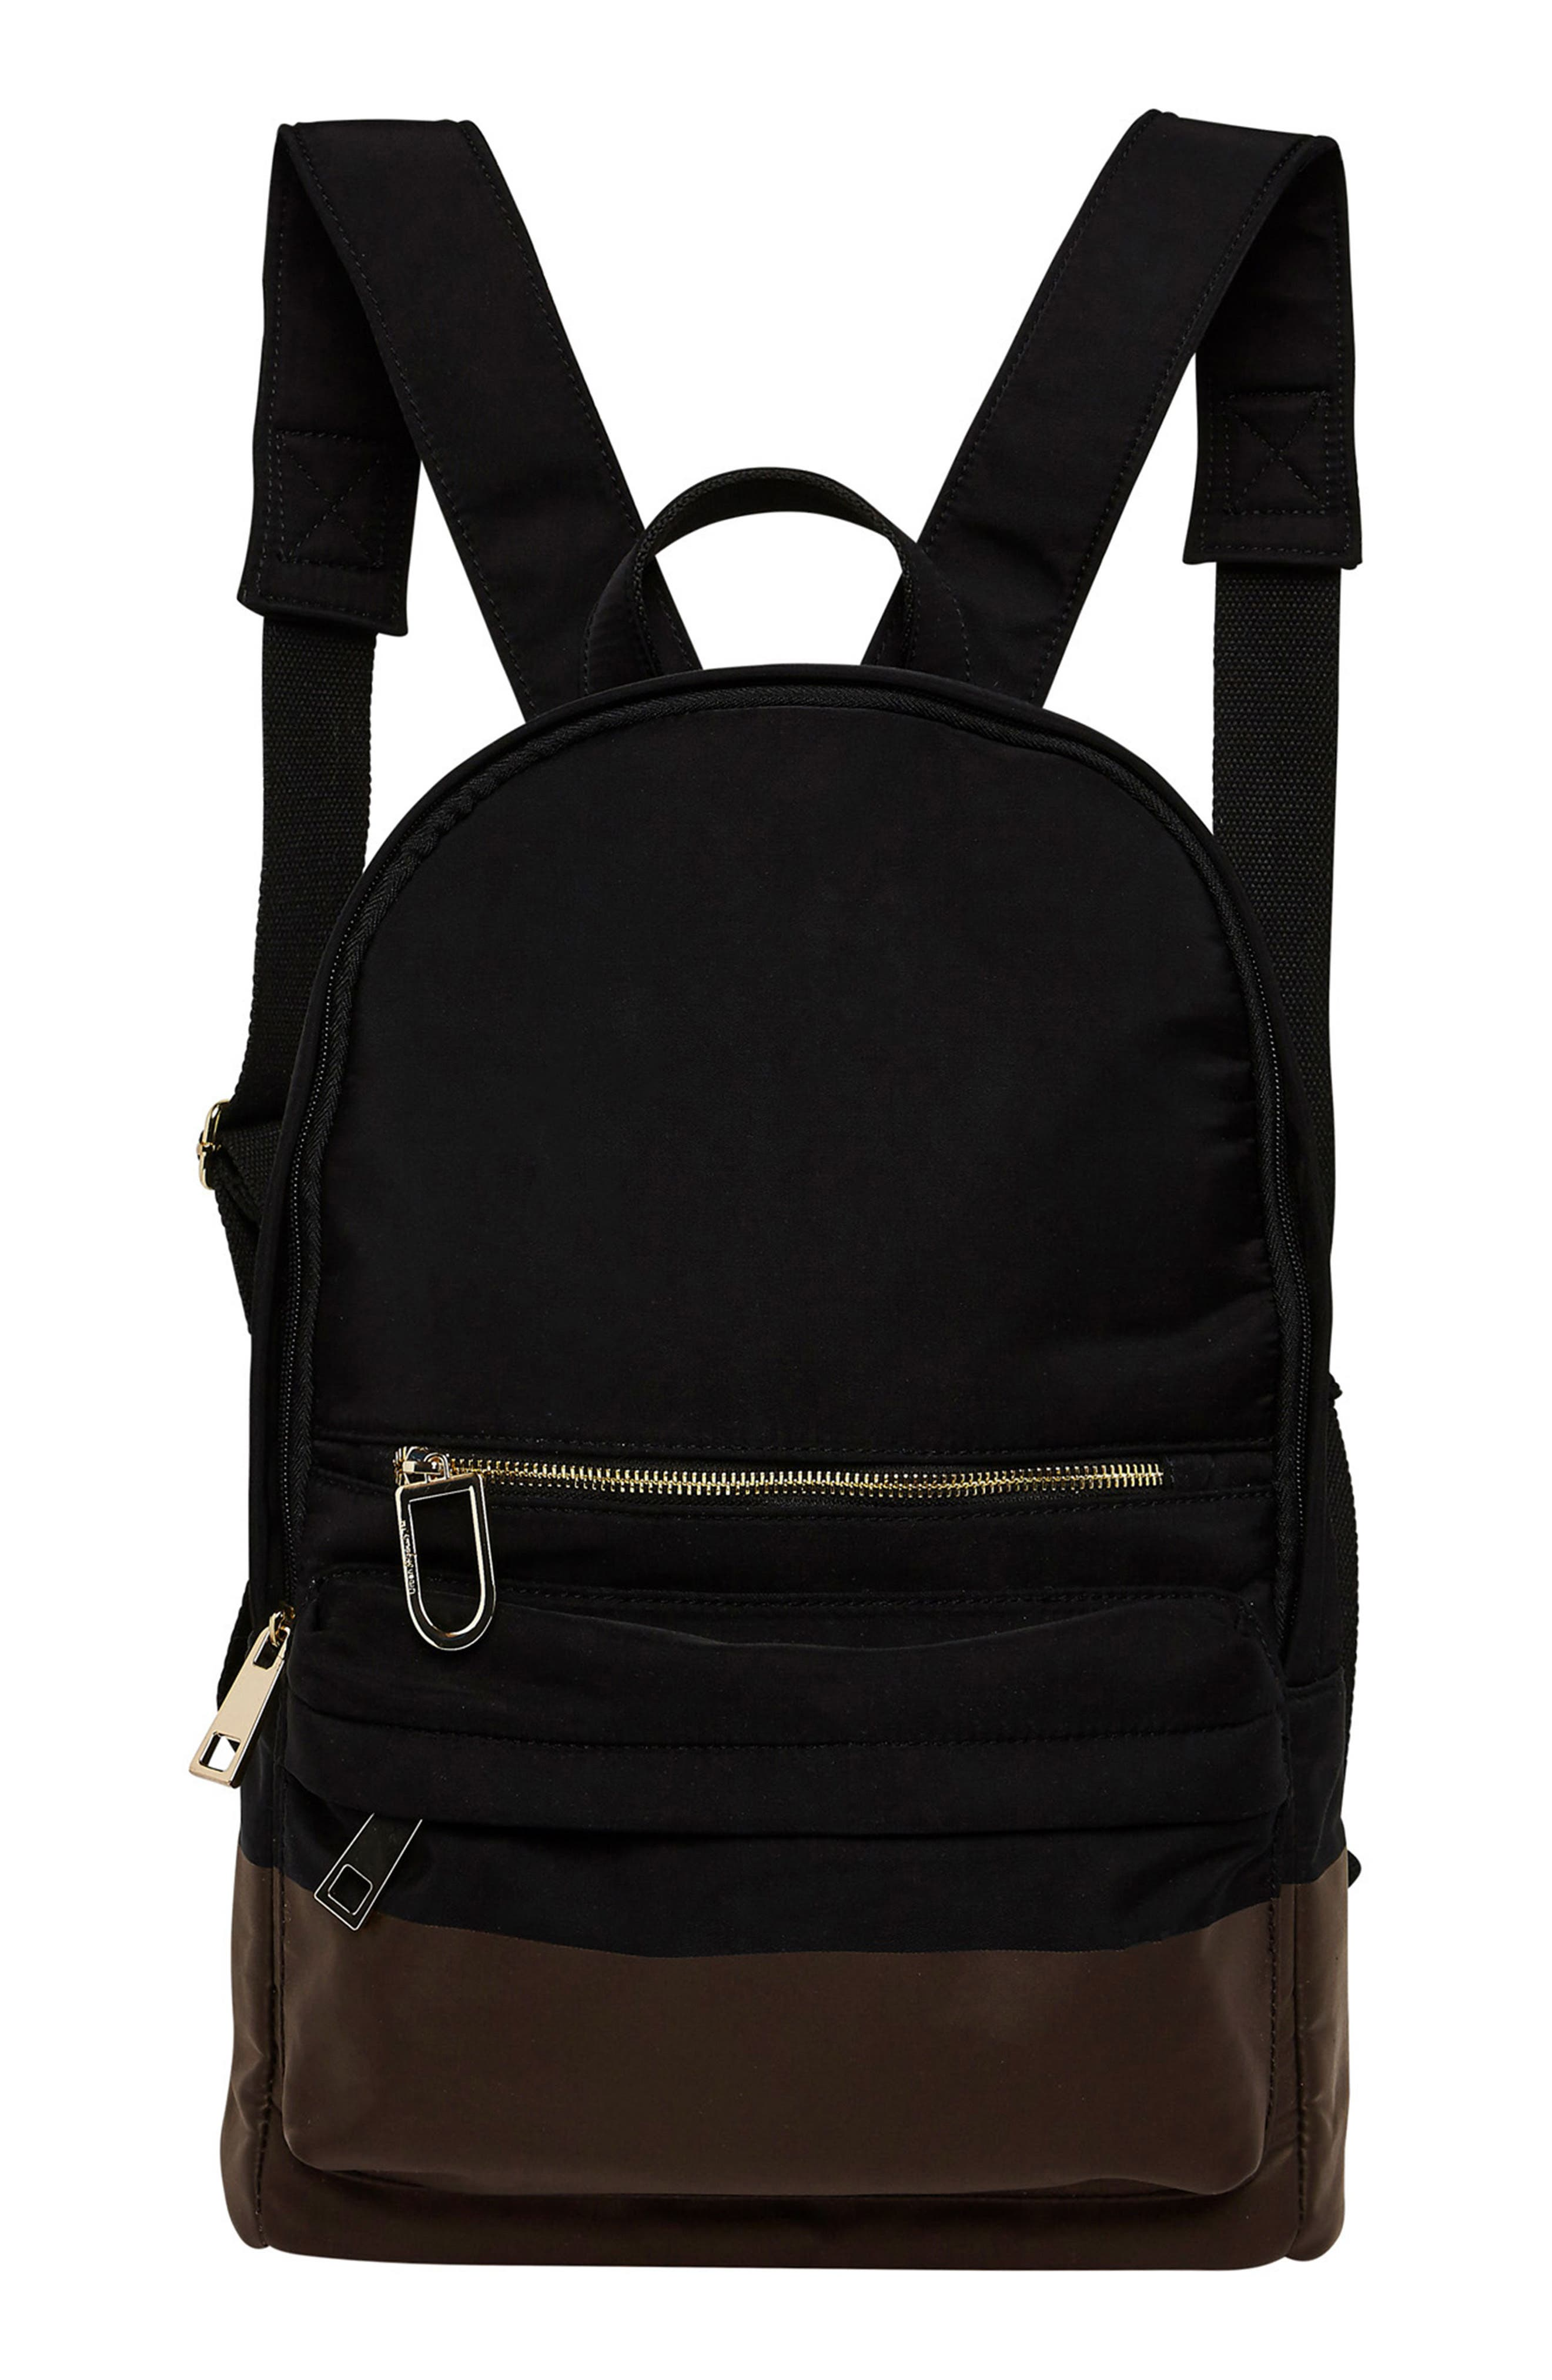 Own Beat Vegan Leather Backpack,                             Main thumbnail 1, color,                             Black